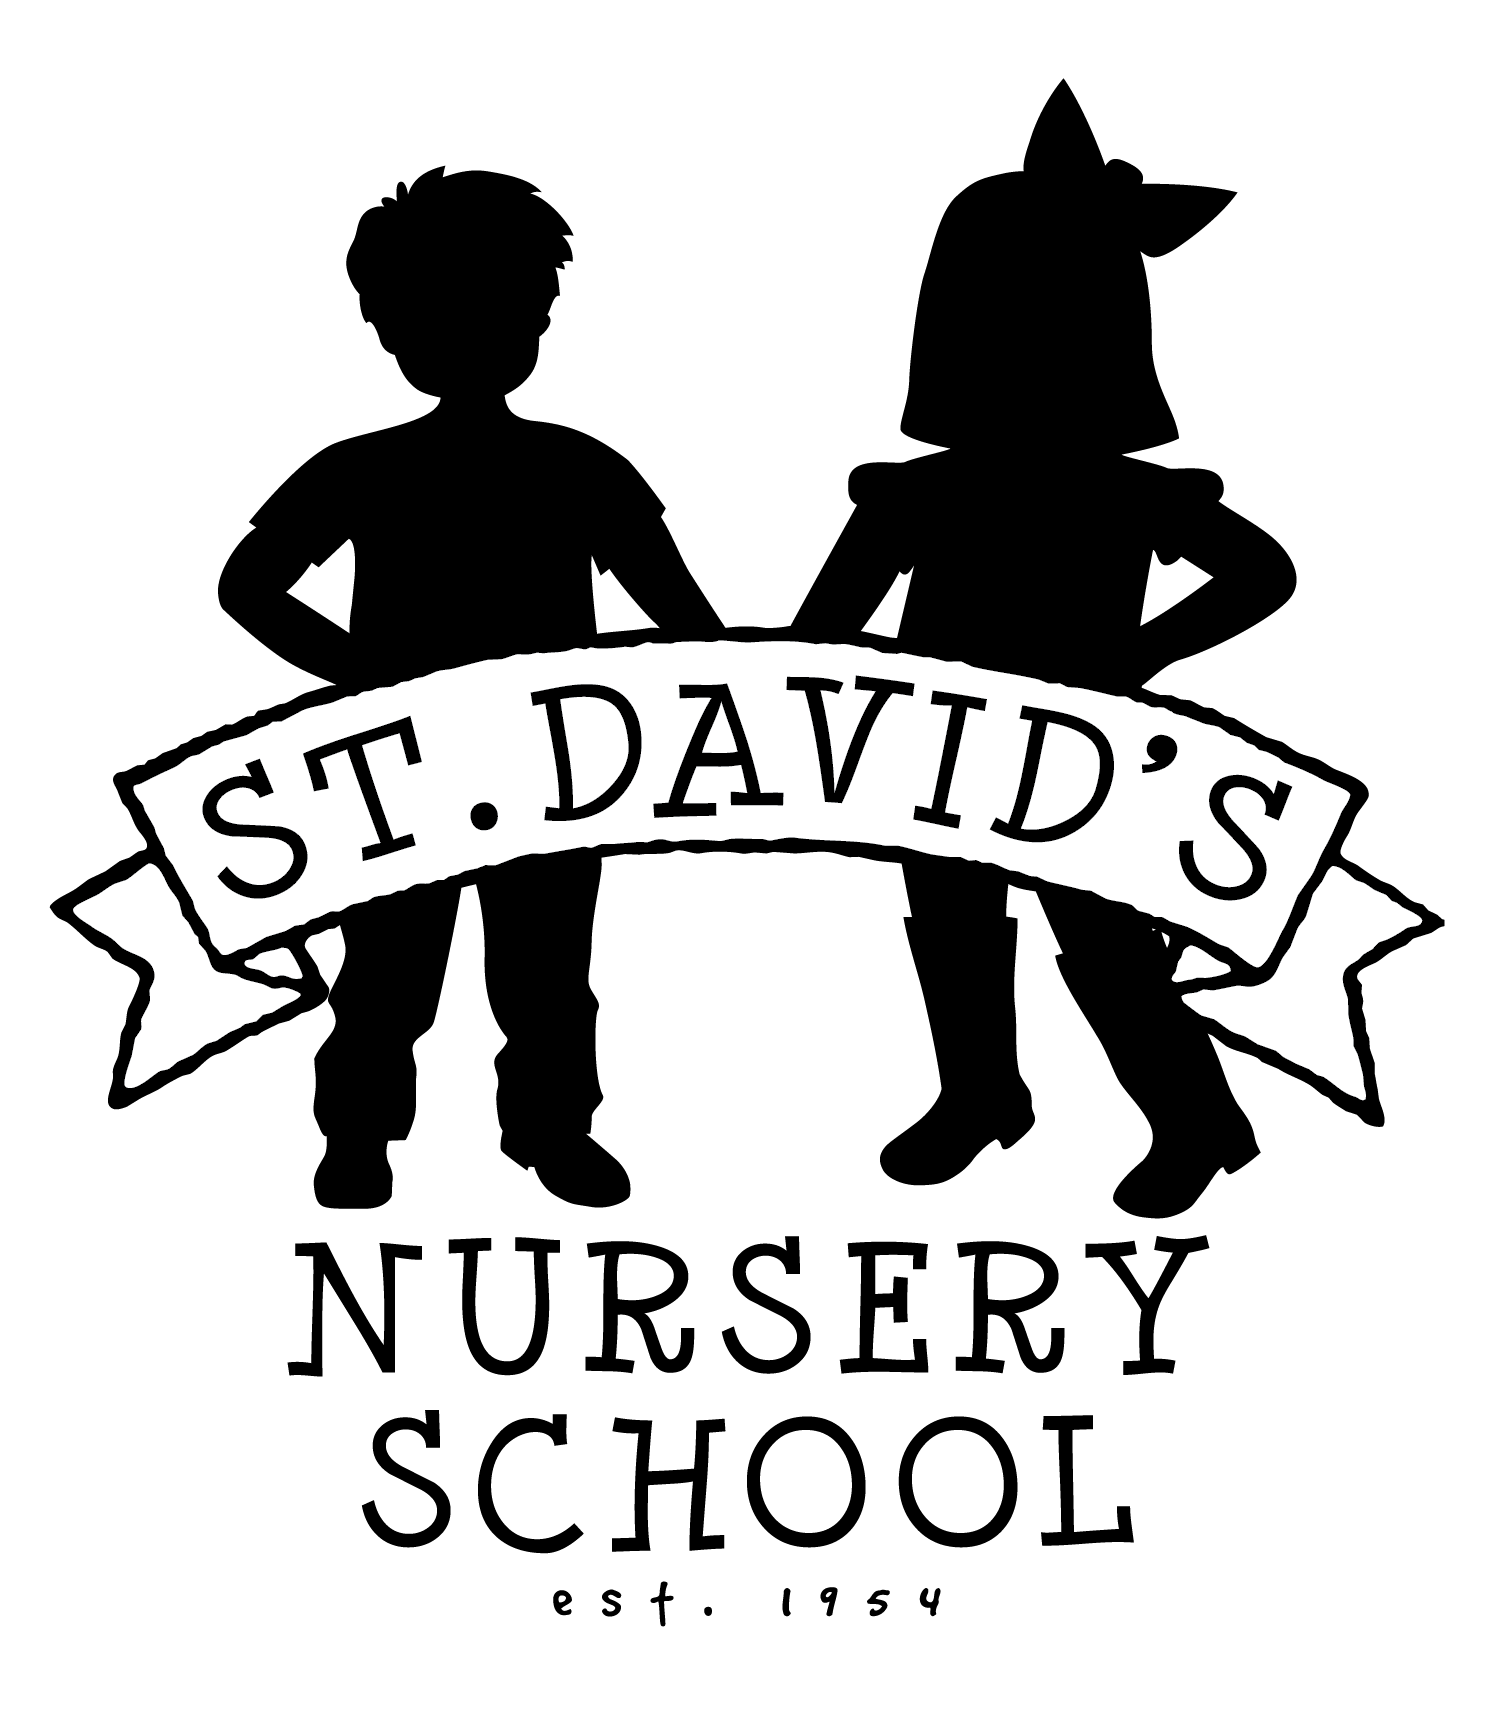 St. David's Nursery School